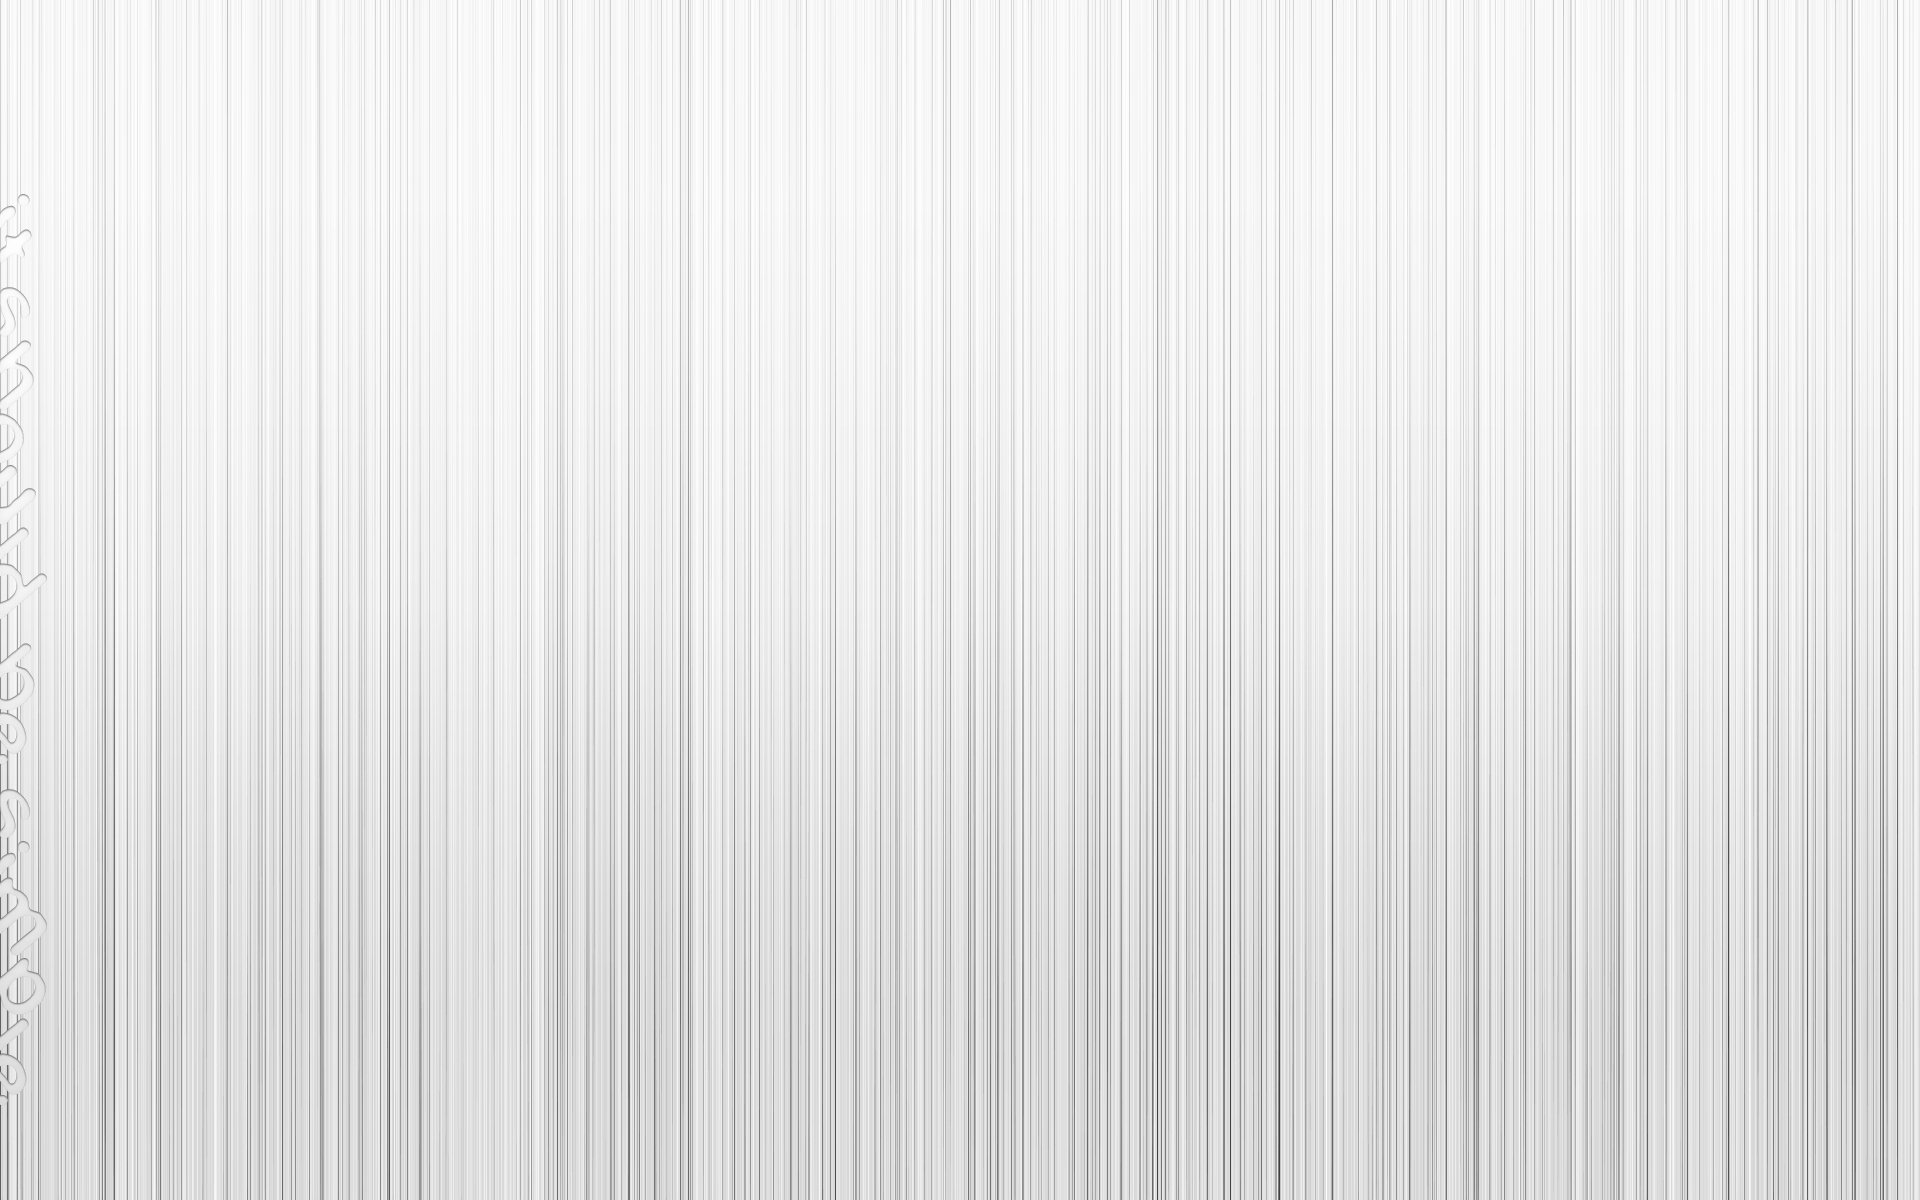 Simple White Tumblr Backgrounds Lovely 47 Free Simple Wallpaper Backgrounds for Your Desktop